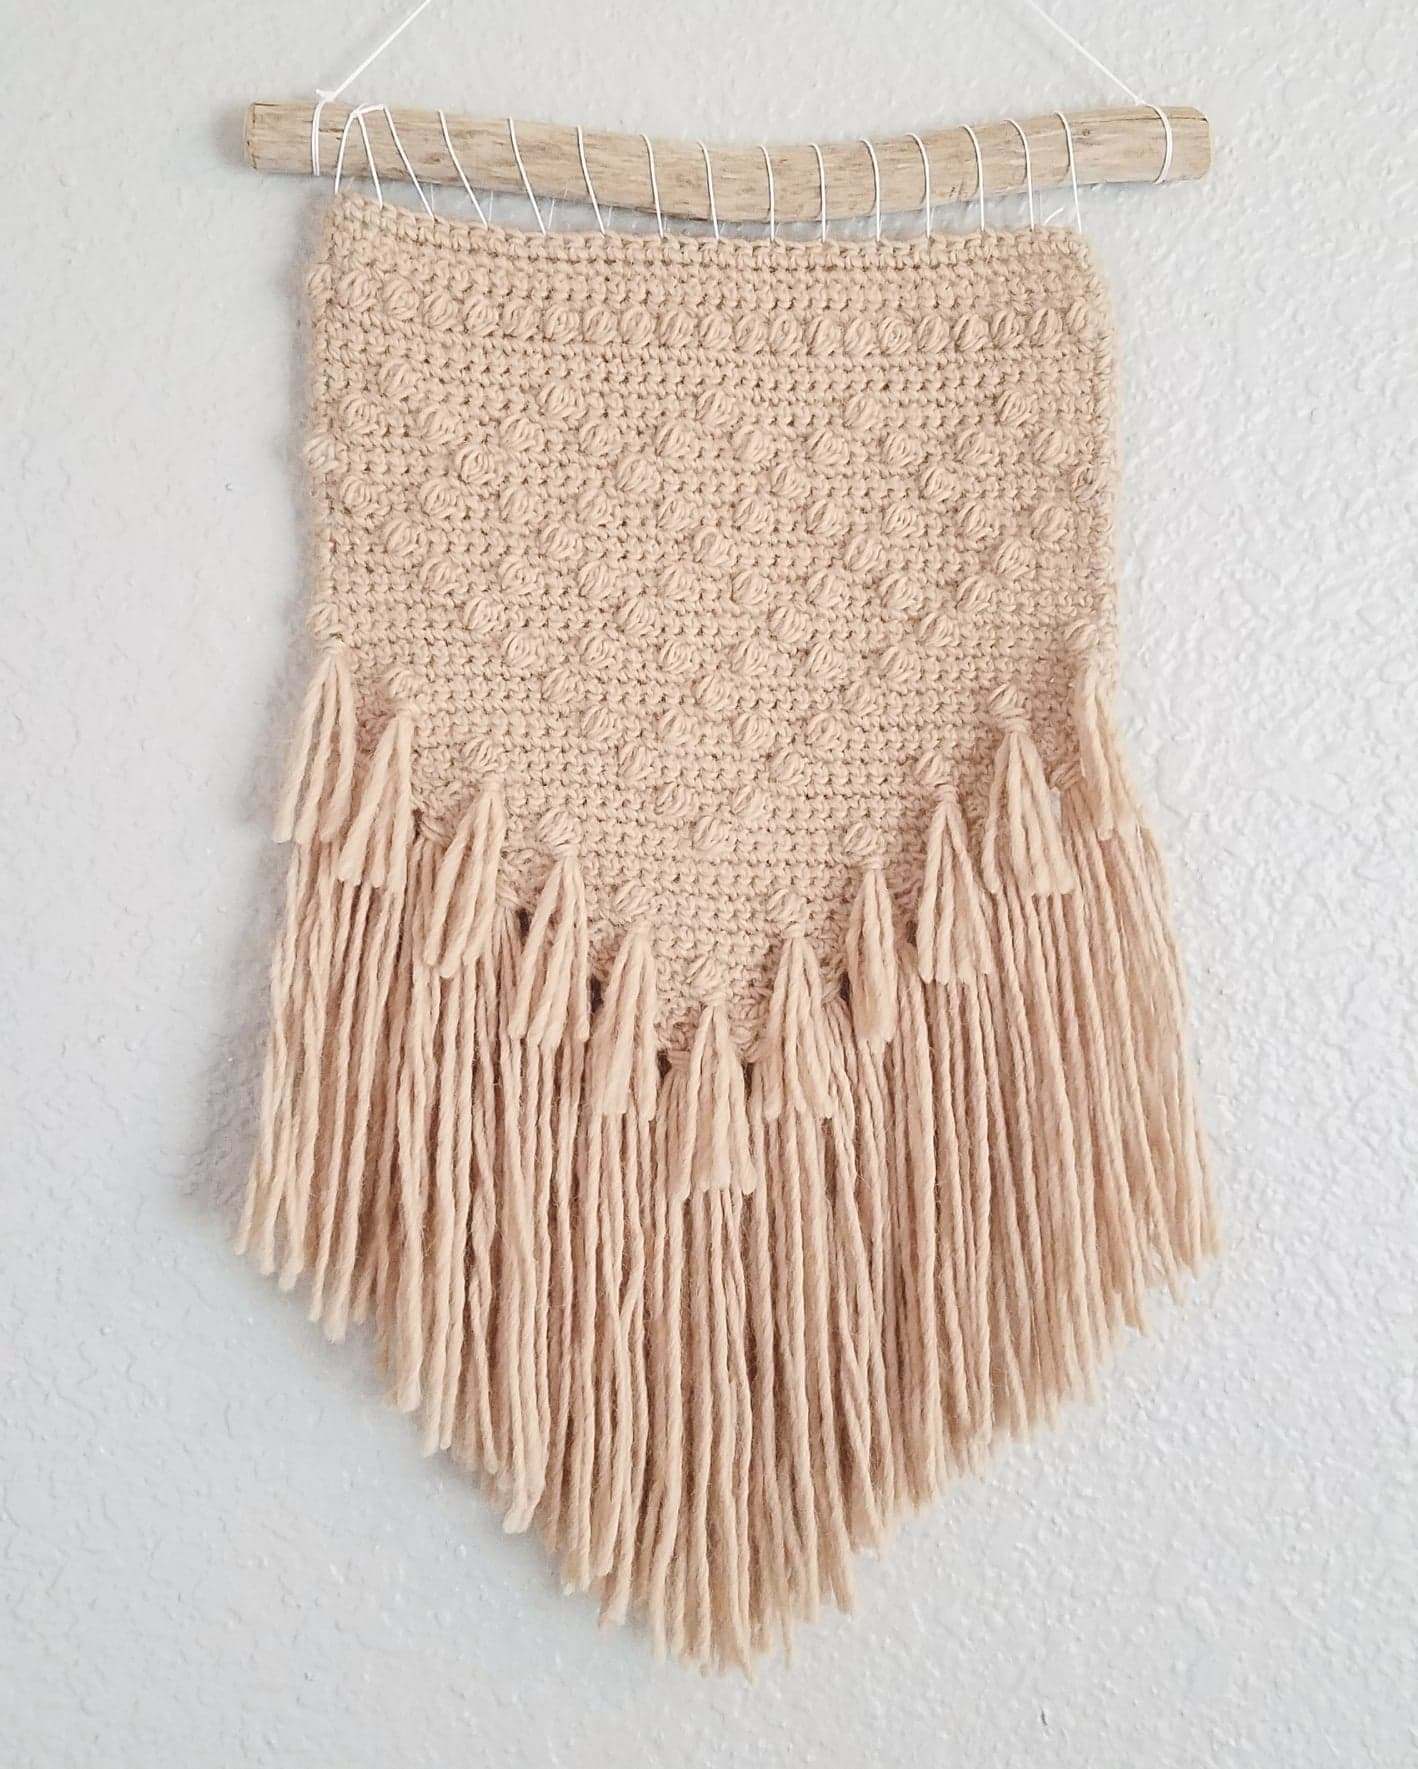 Lima Wall Hanging - The Homely Alpaca